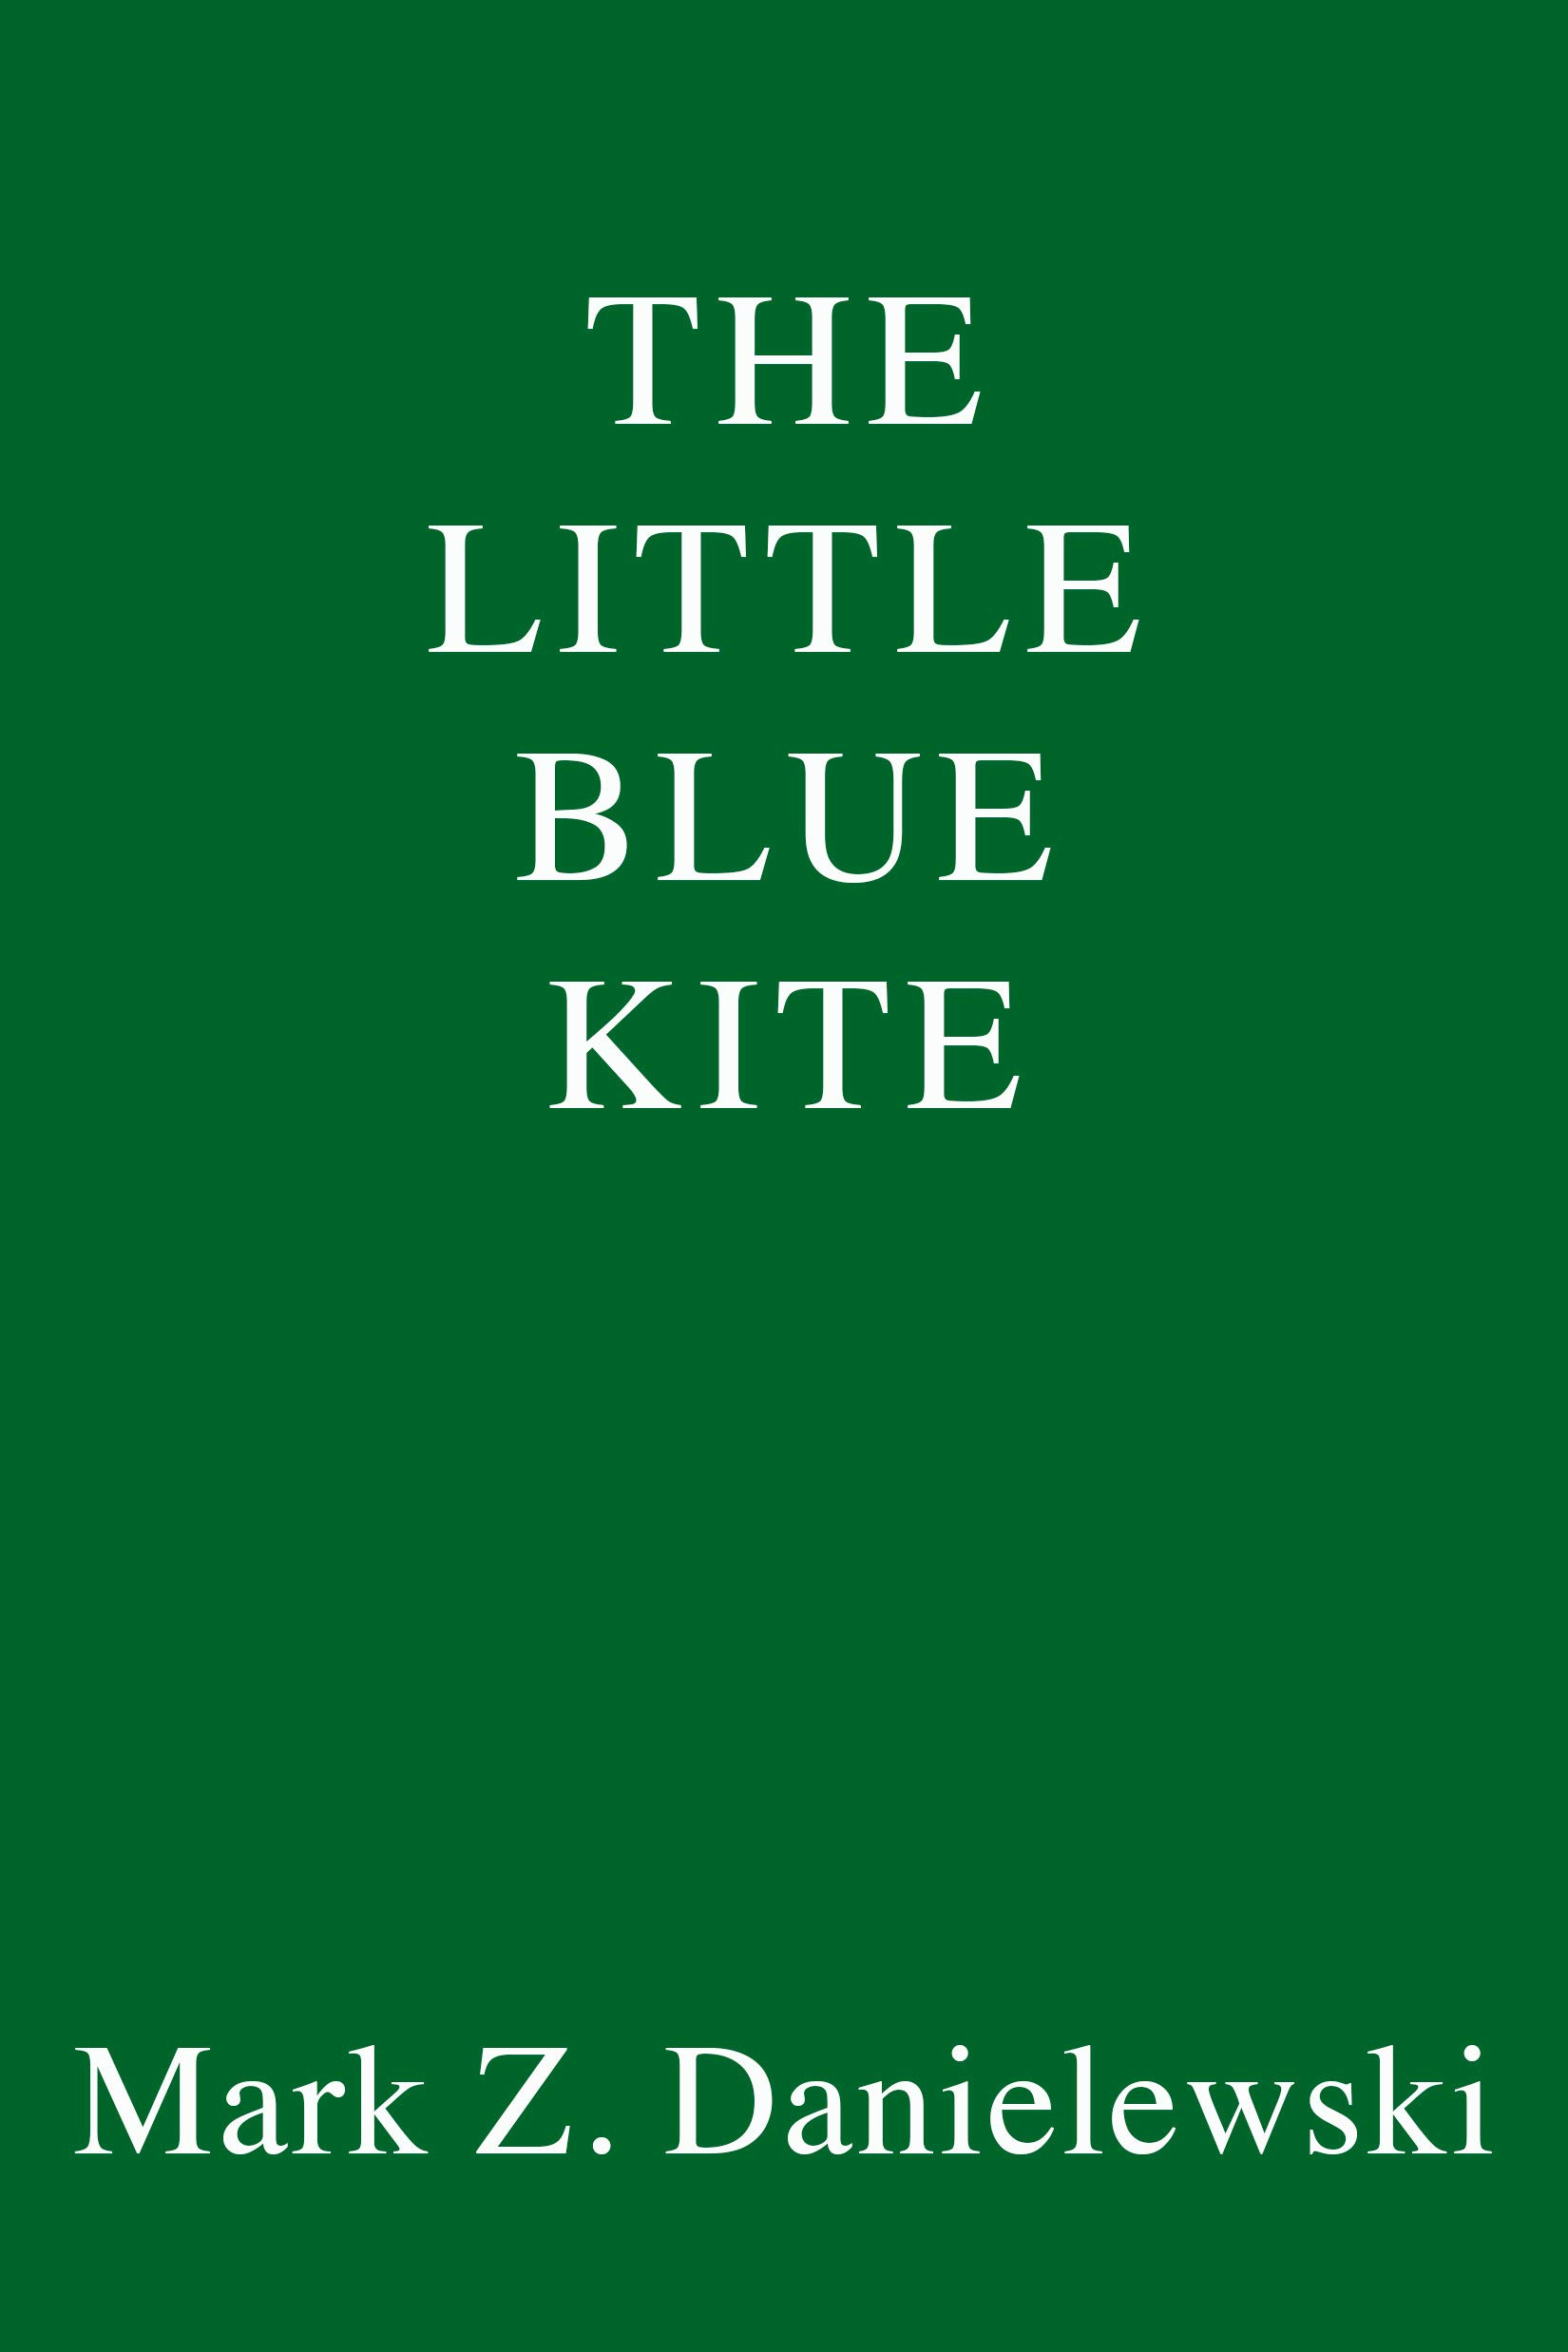 Let There Be Lights And Kites Again >> The Little Blue Kite Mark Z Danielewski 9781524747695 Amazon Com